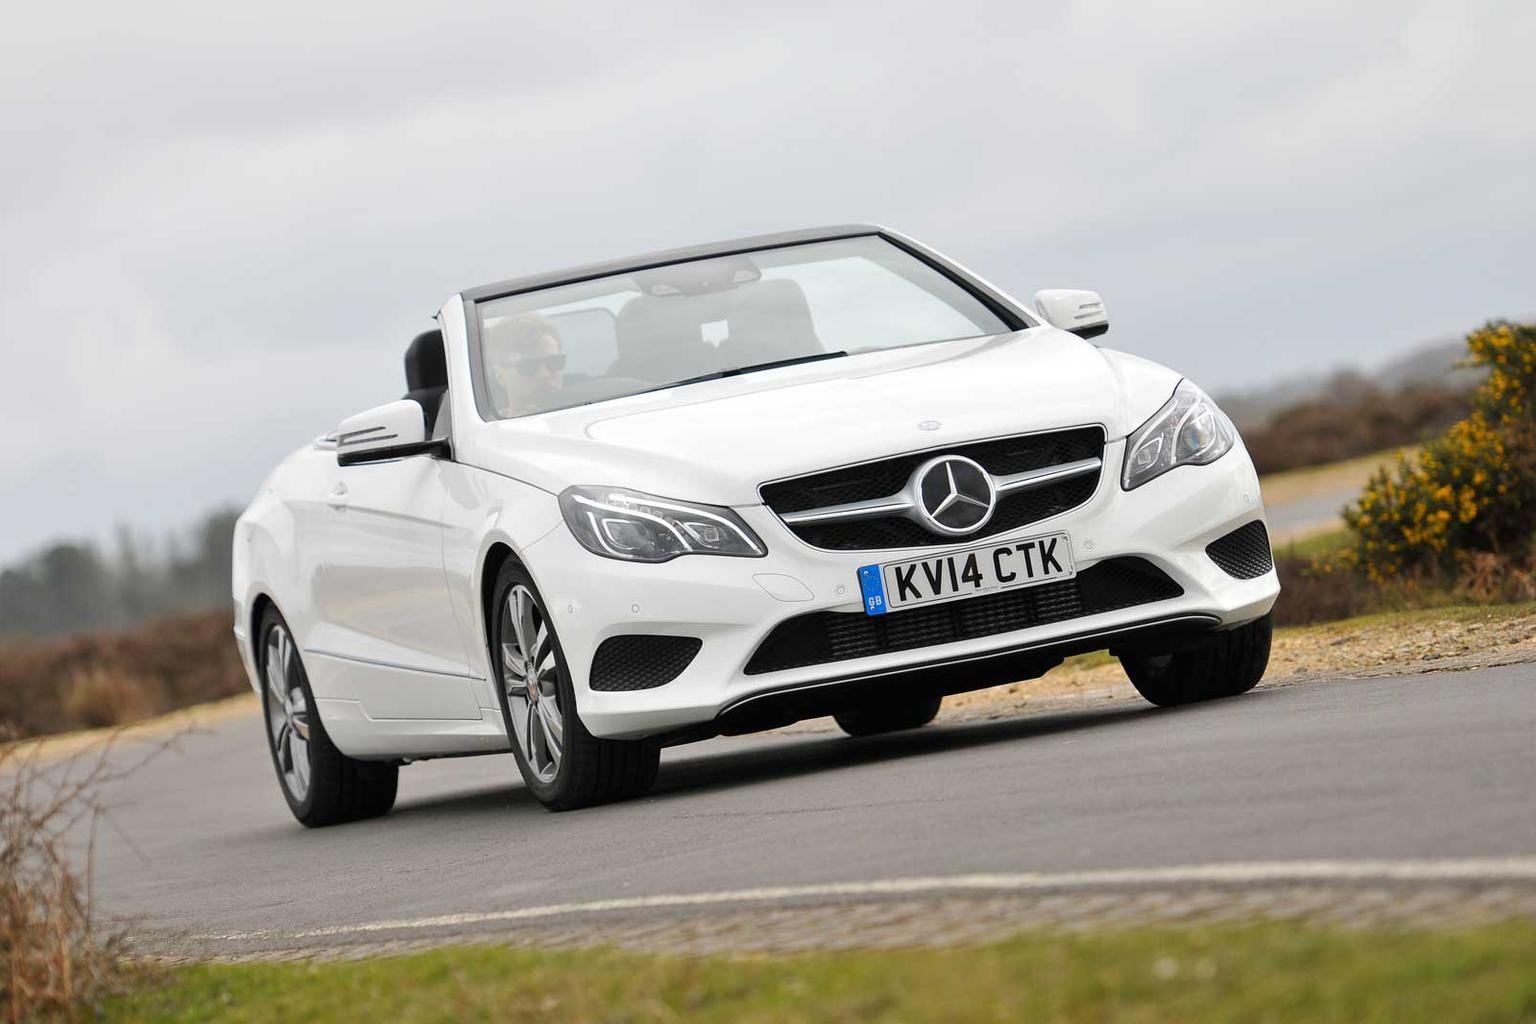 BMW 4 Series Convertible vs Mercedes E-Class Cabriolet